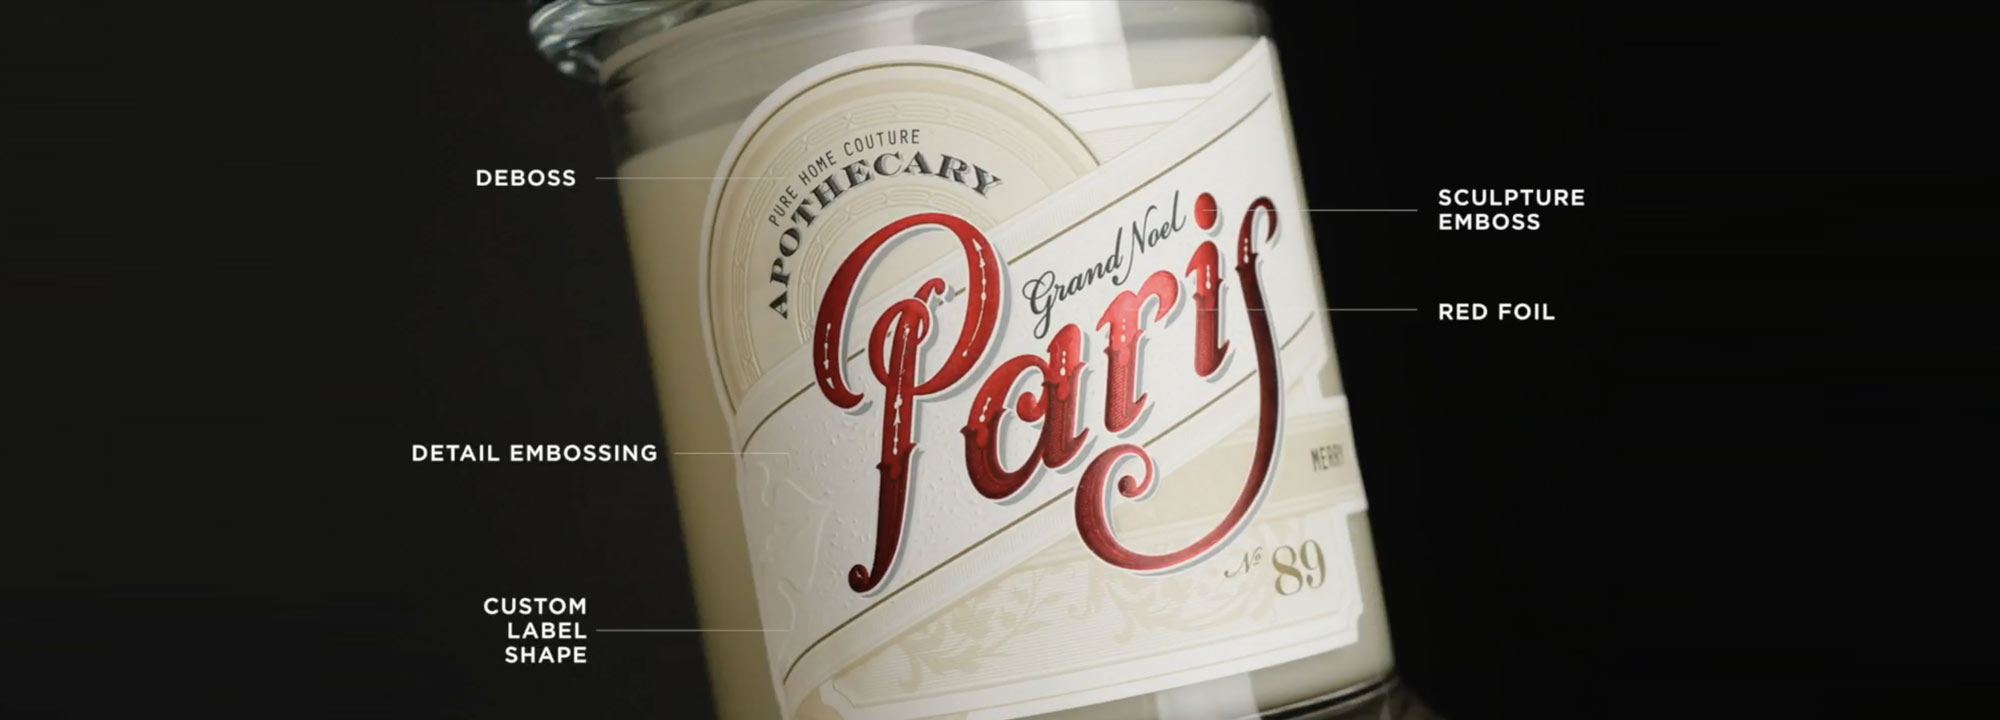 Paris Candle Label